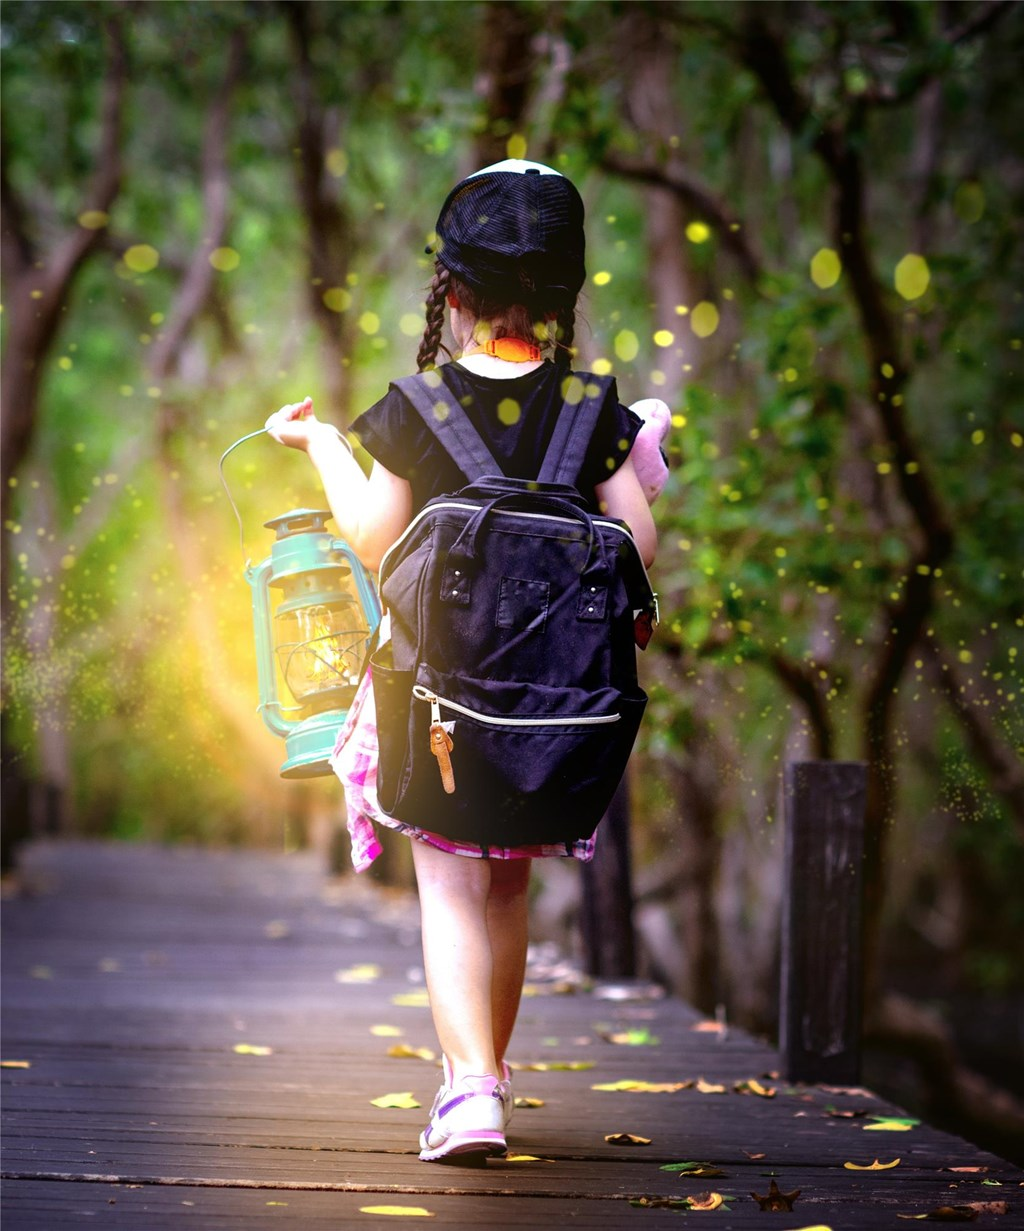 Child with backpack and lantern walking through forest and fireflies